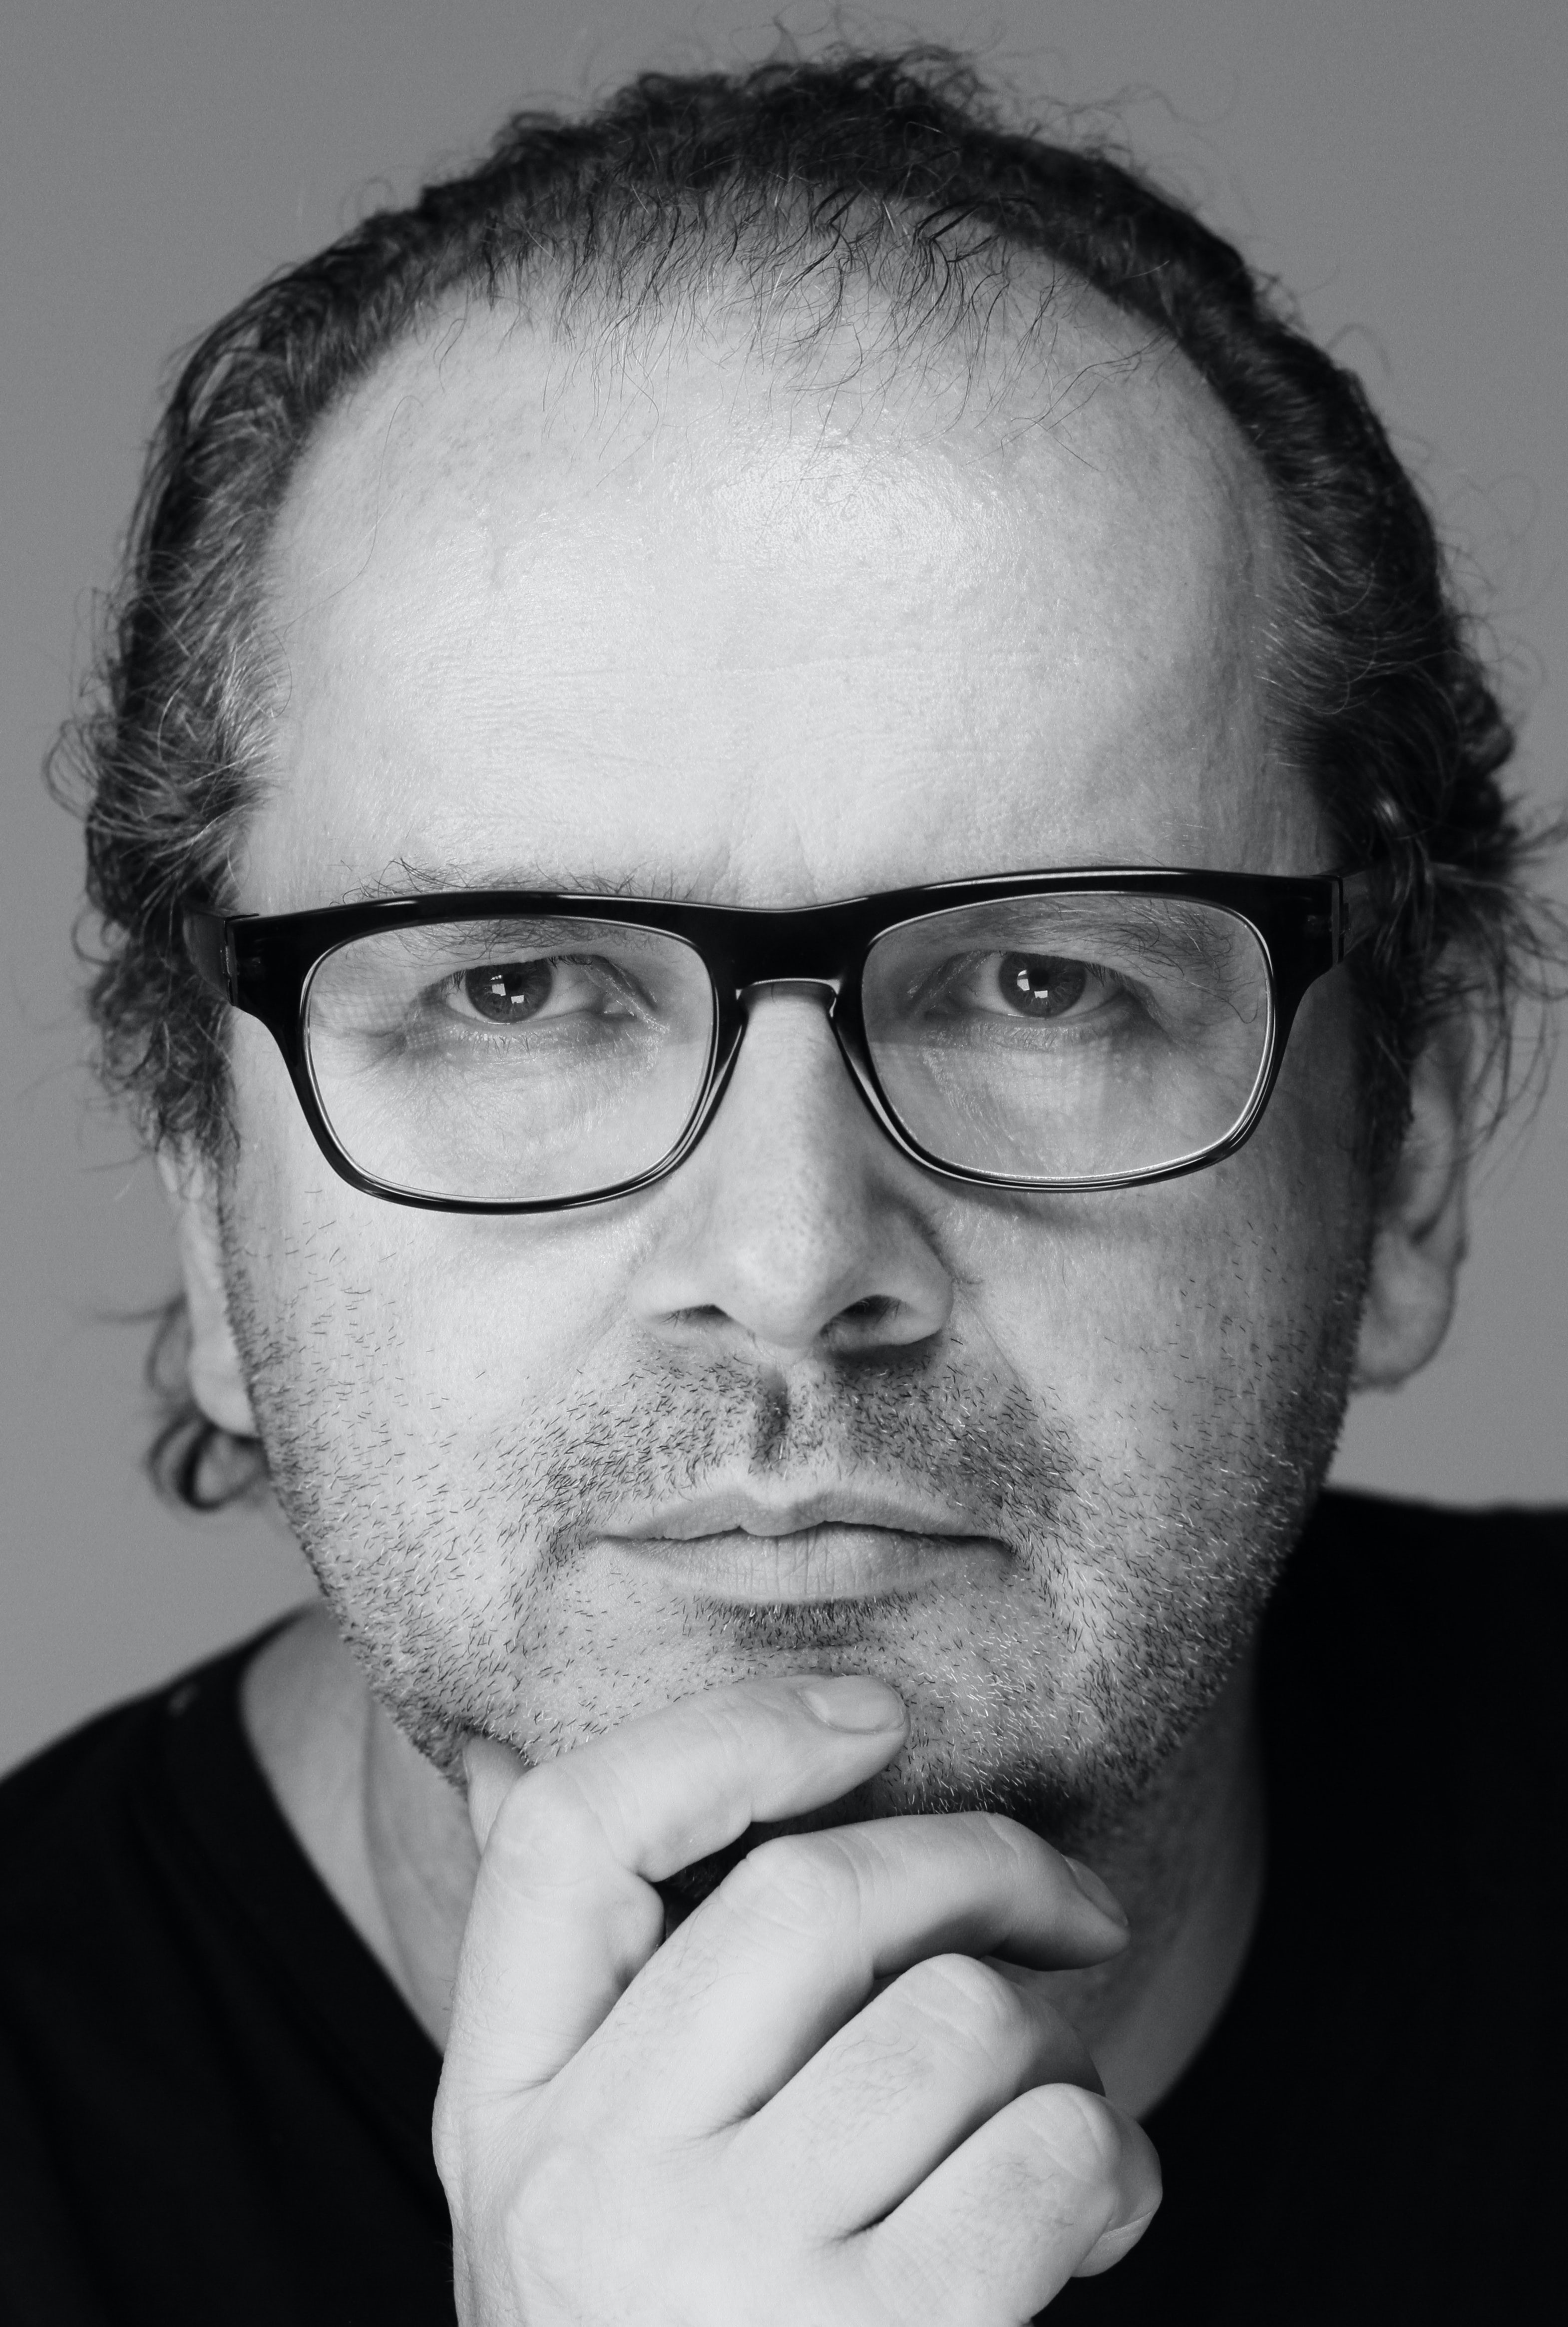 Power Moves | Robin Derrick Exits Spring Studios, Richemont Adds to Board of Directors